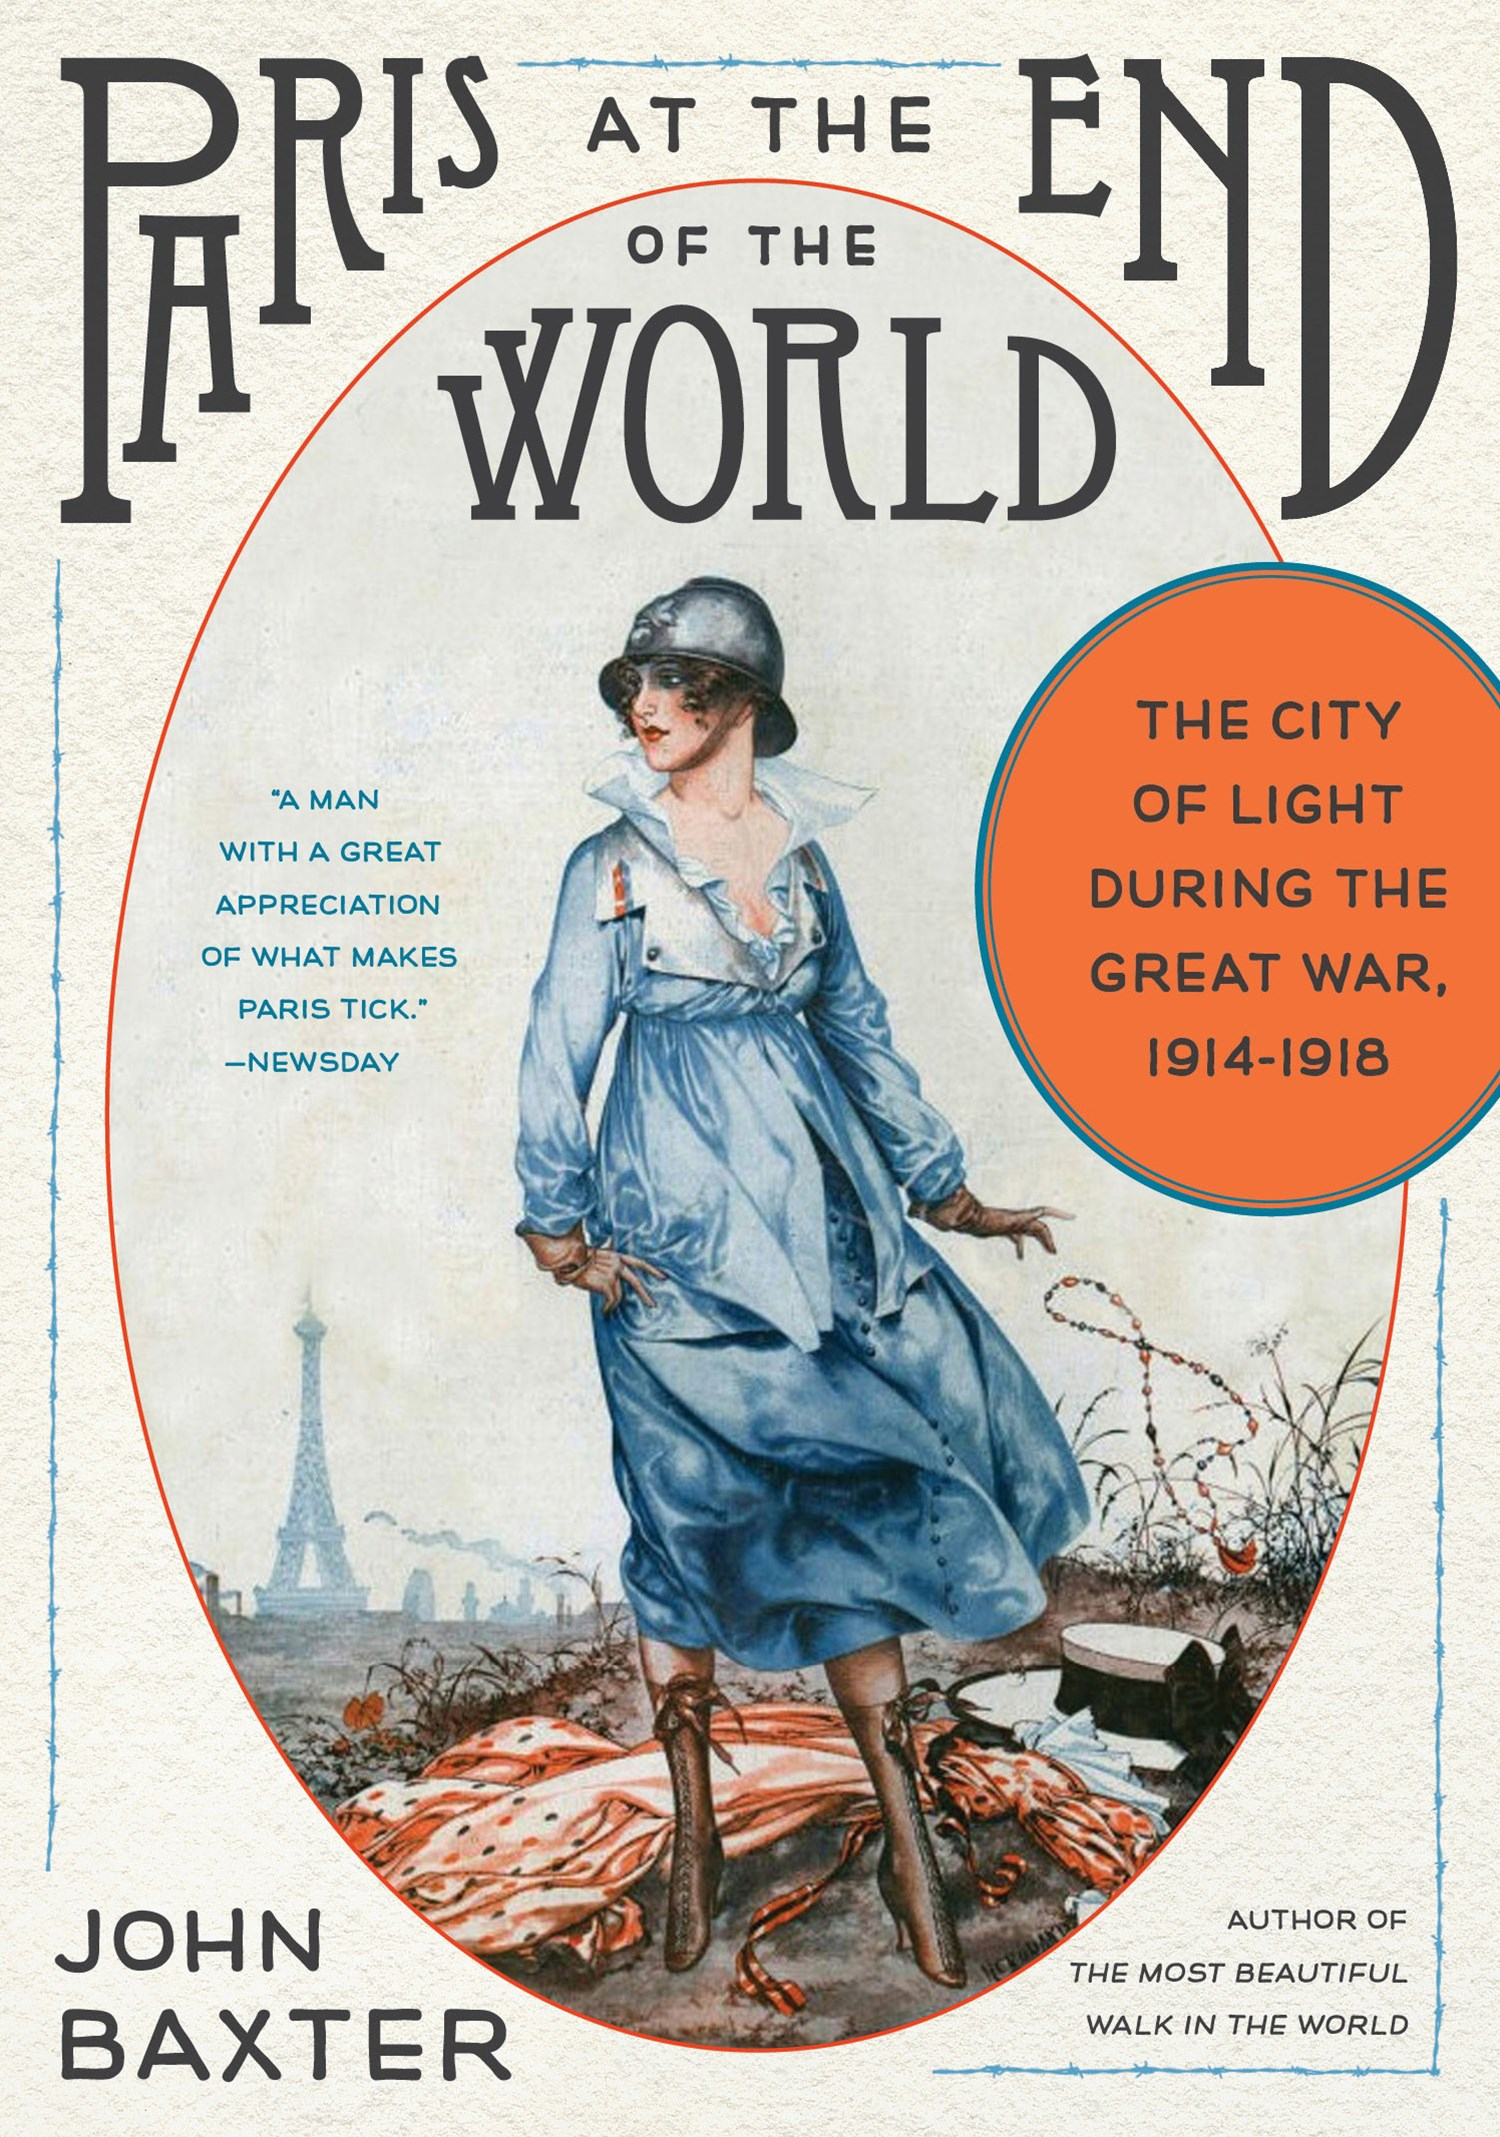 Paris at the End of the World: The City of Light During the Great War, 1914-1918